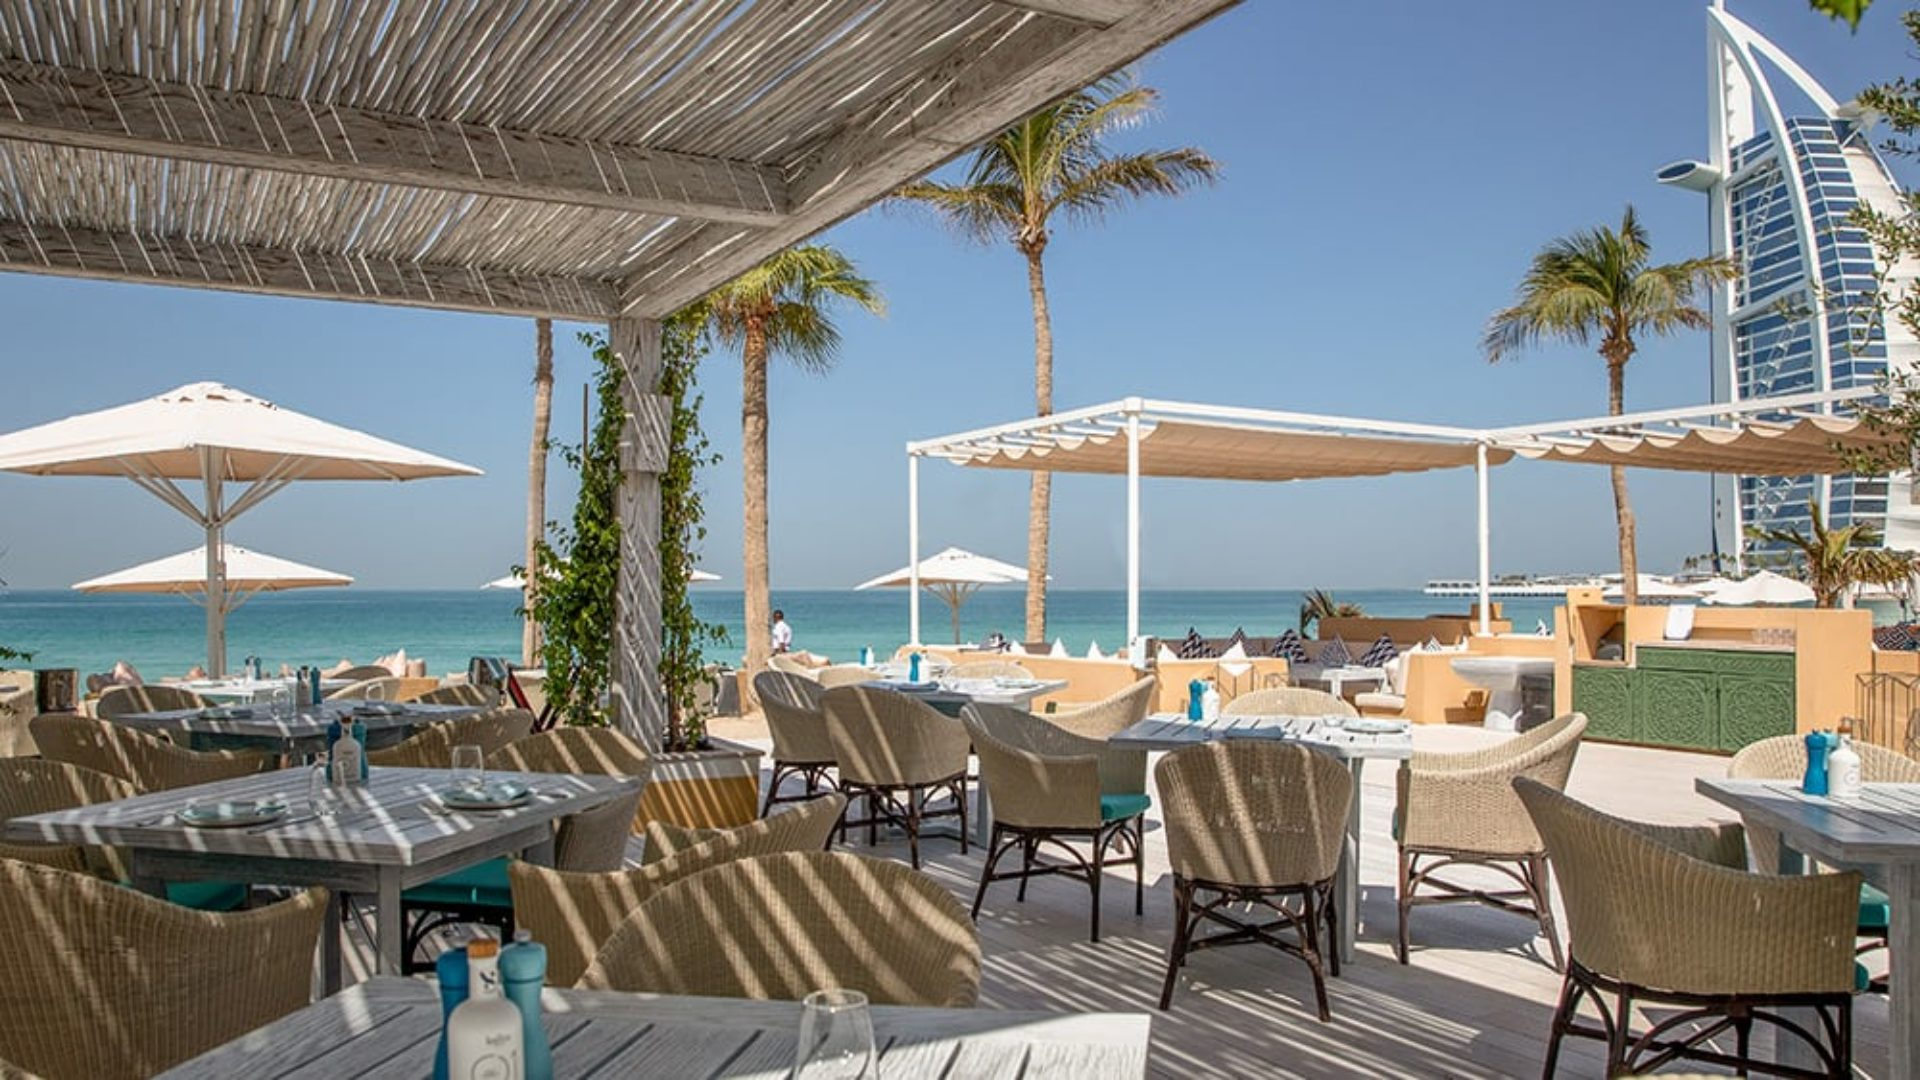 Outdoor terrace of Shimmers Restaurant at Jumeirah Mina A'Salam